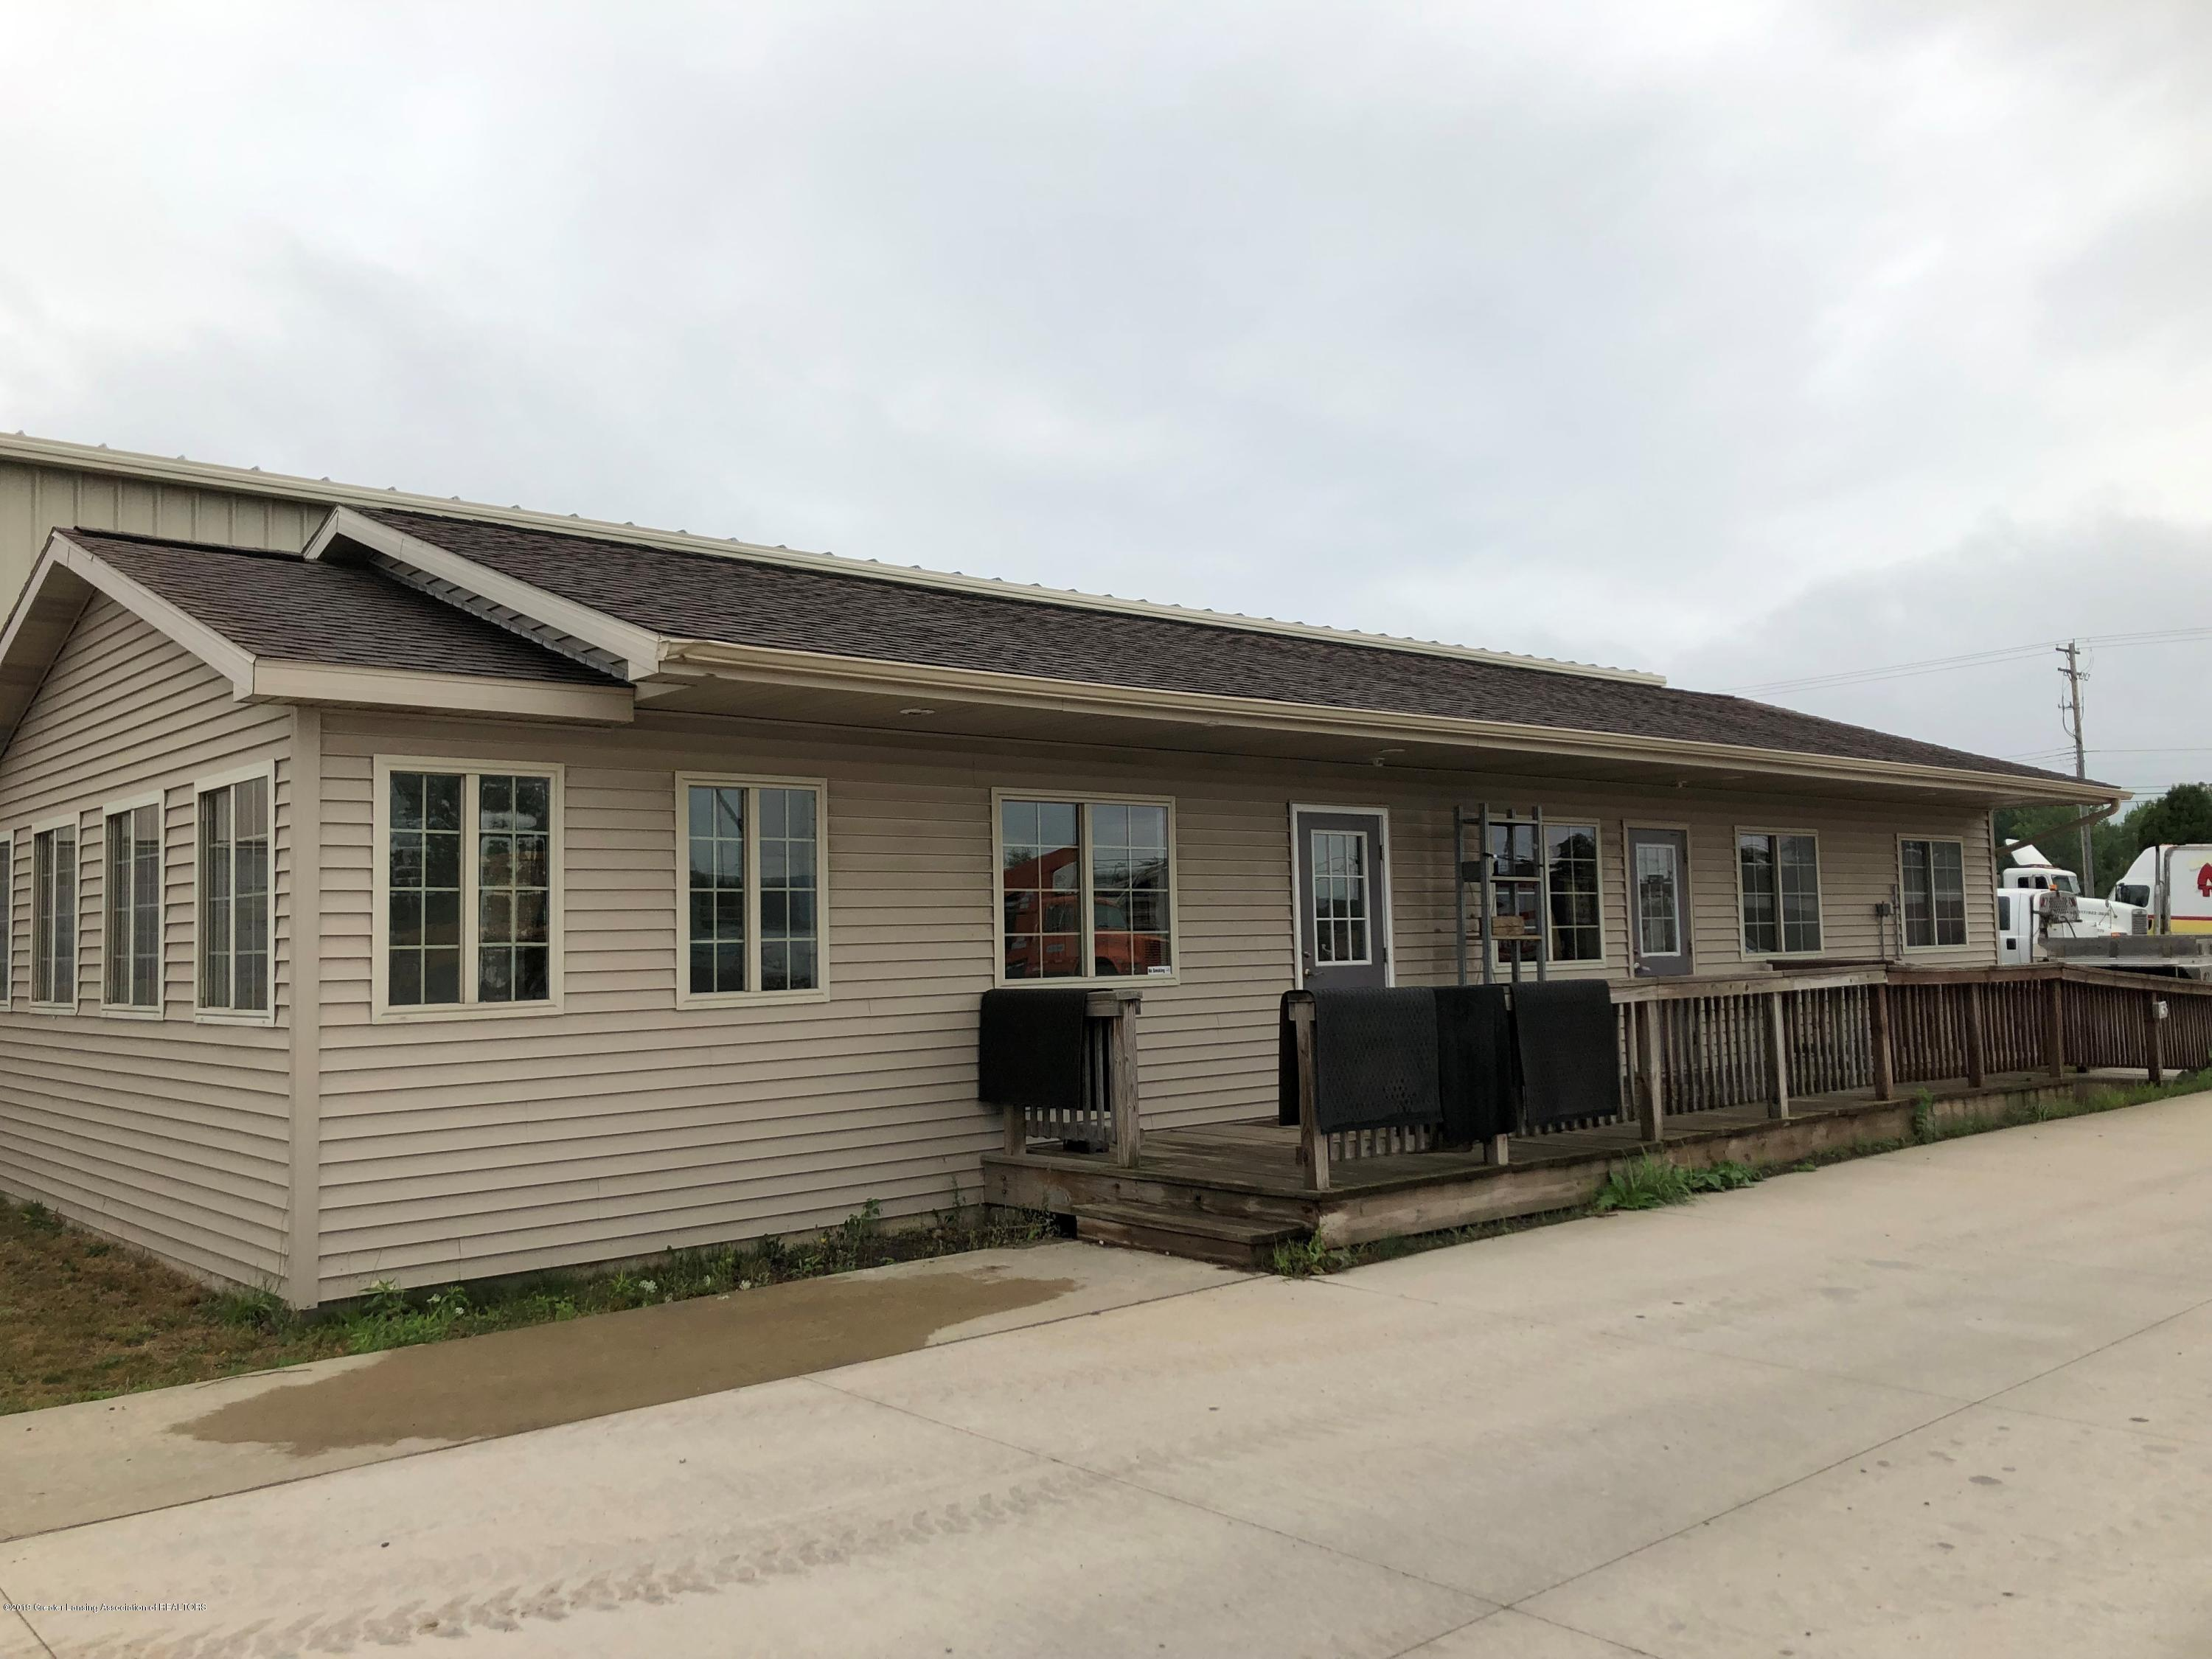 4401 S Creyts Rd - front of building - 1